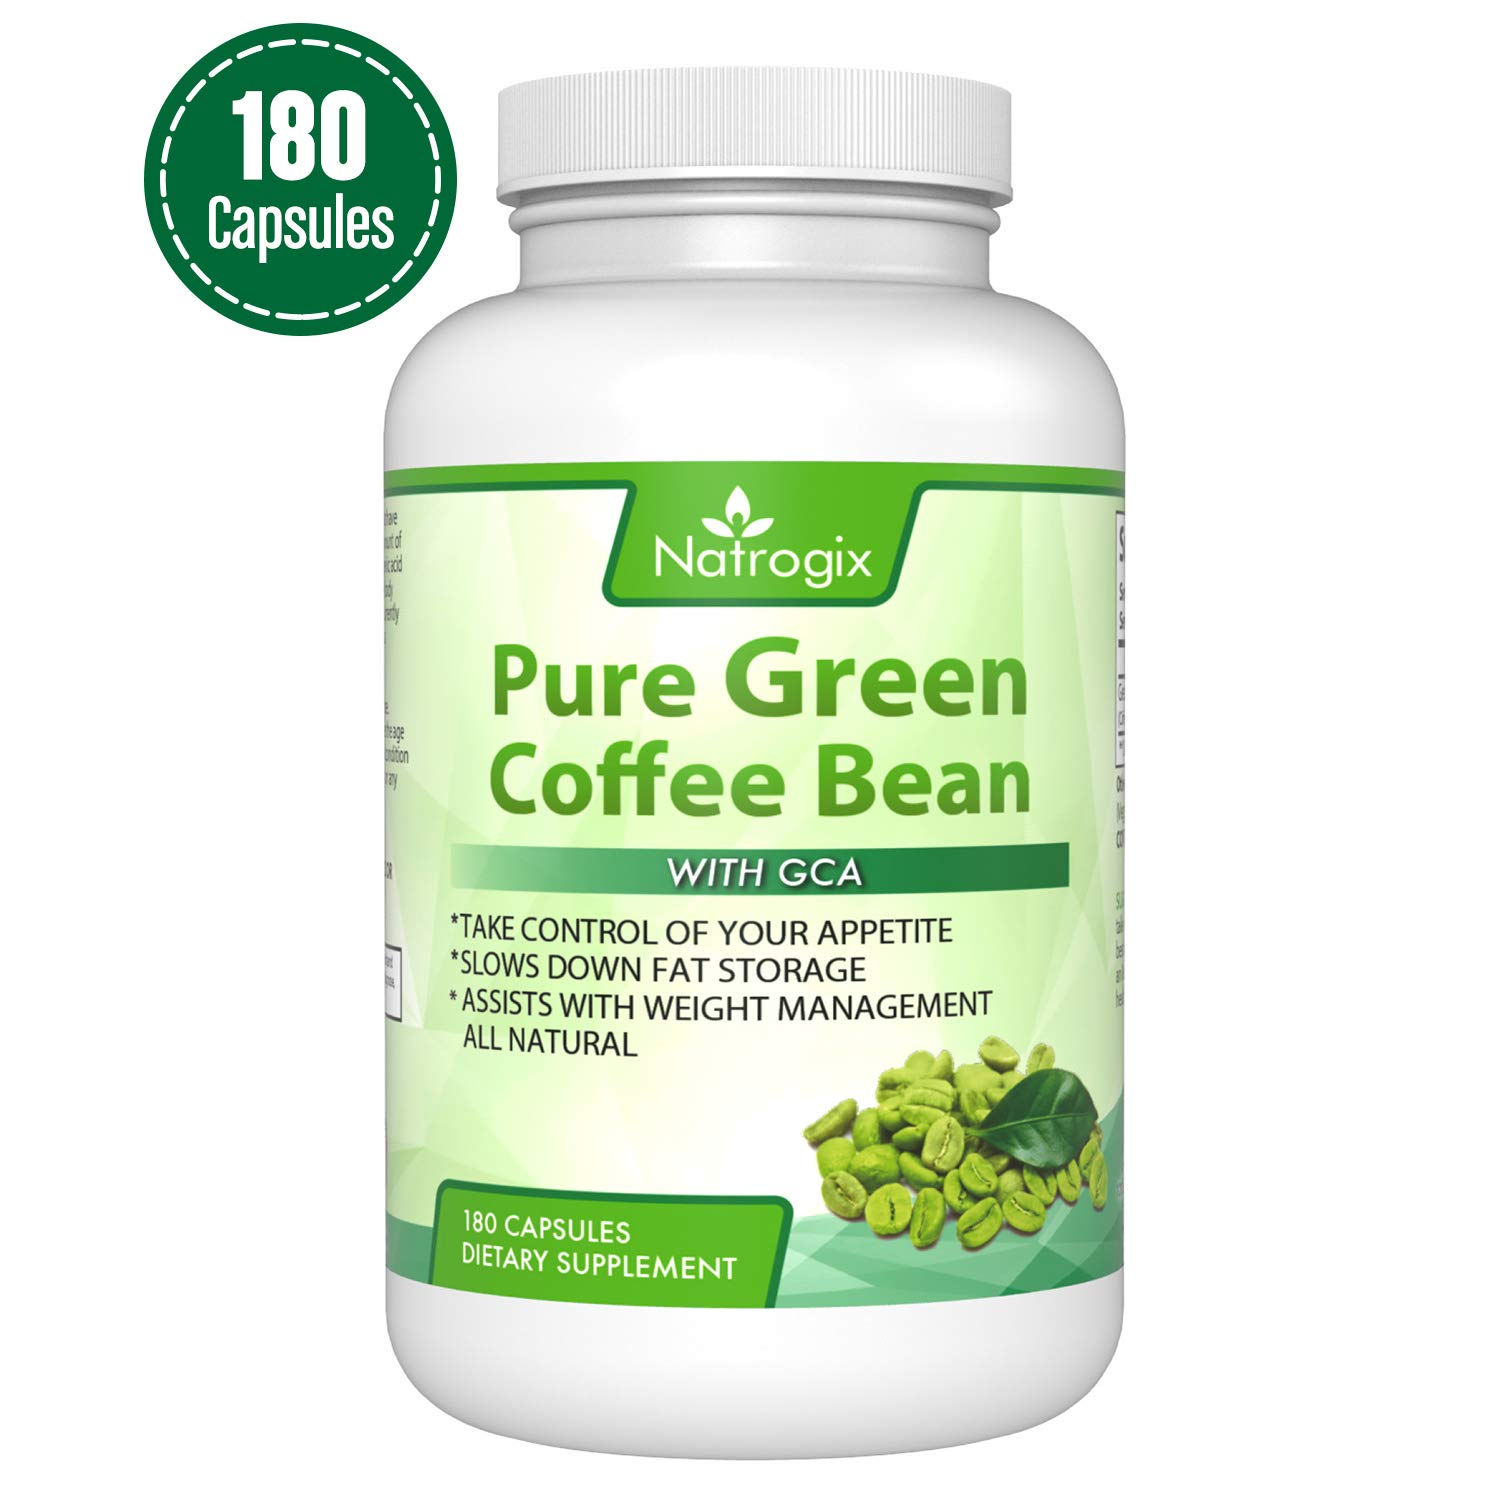 Natrogix 800mg Green Coffee Bean Extract - Pure Natural GCA (Standardized to 50% Chlorogenic Acids) Supplement, Appetite Suppressant to Lose Weight. Energy Booster,180 Capsules/Made in USA